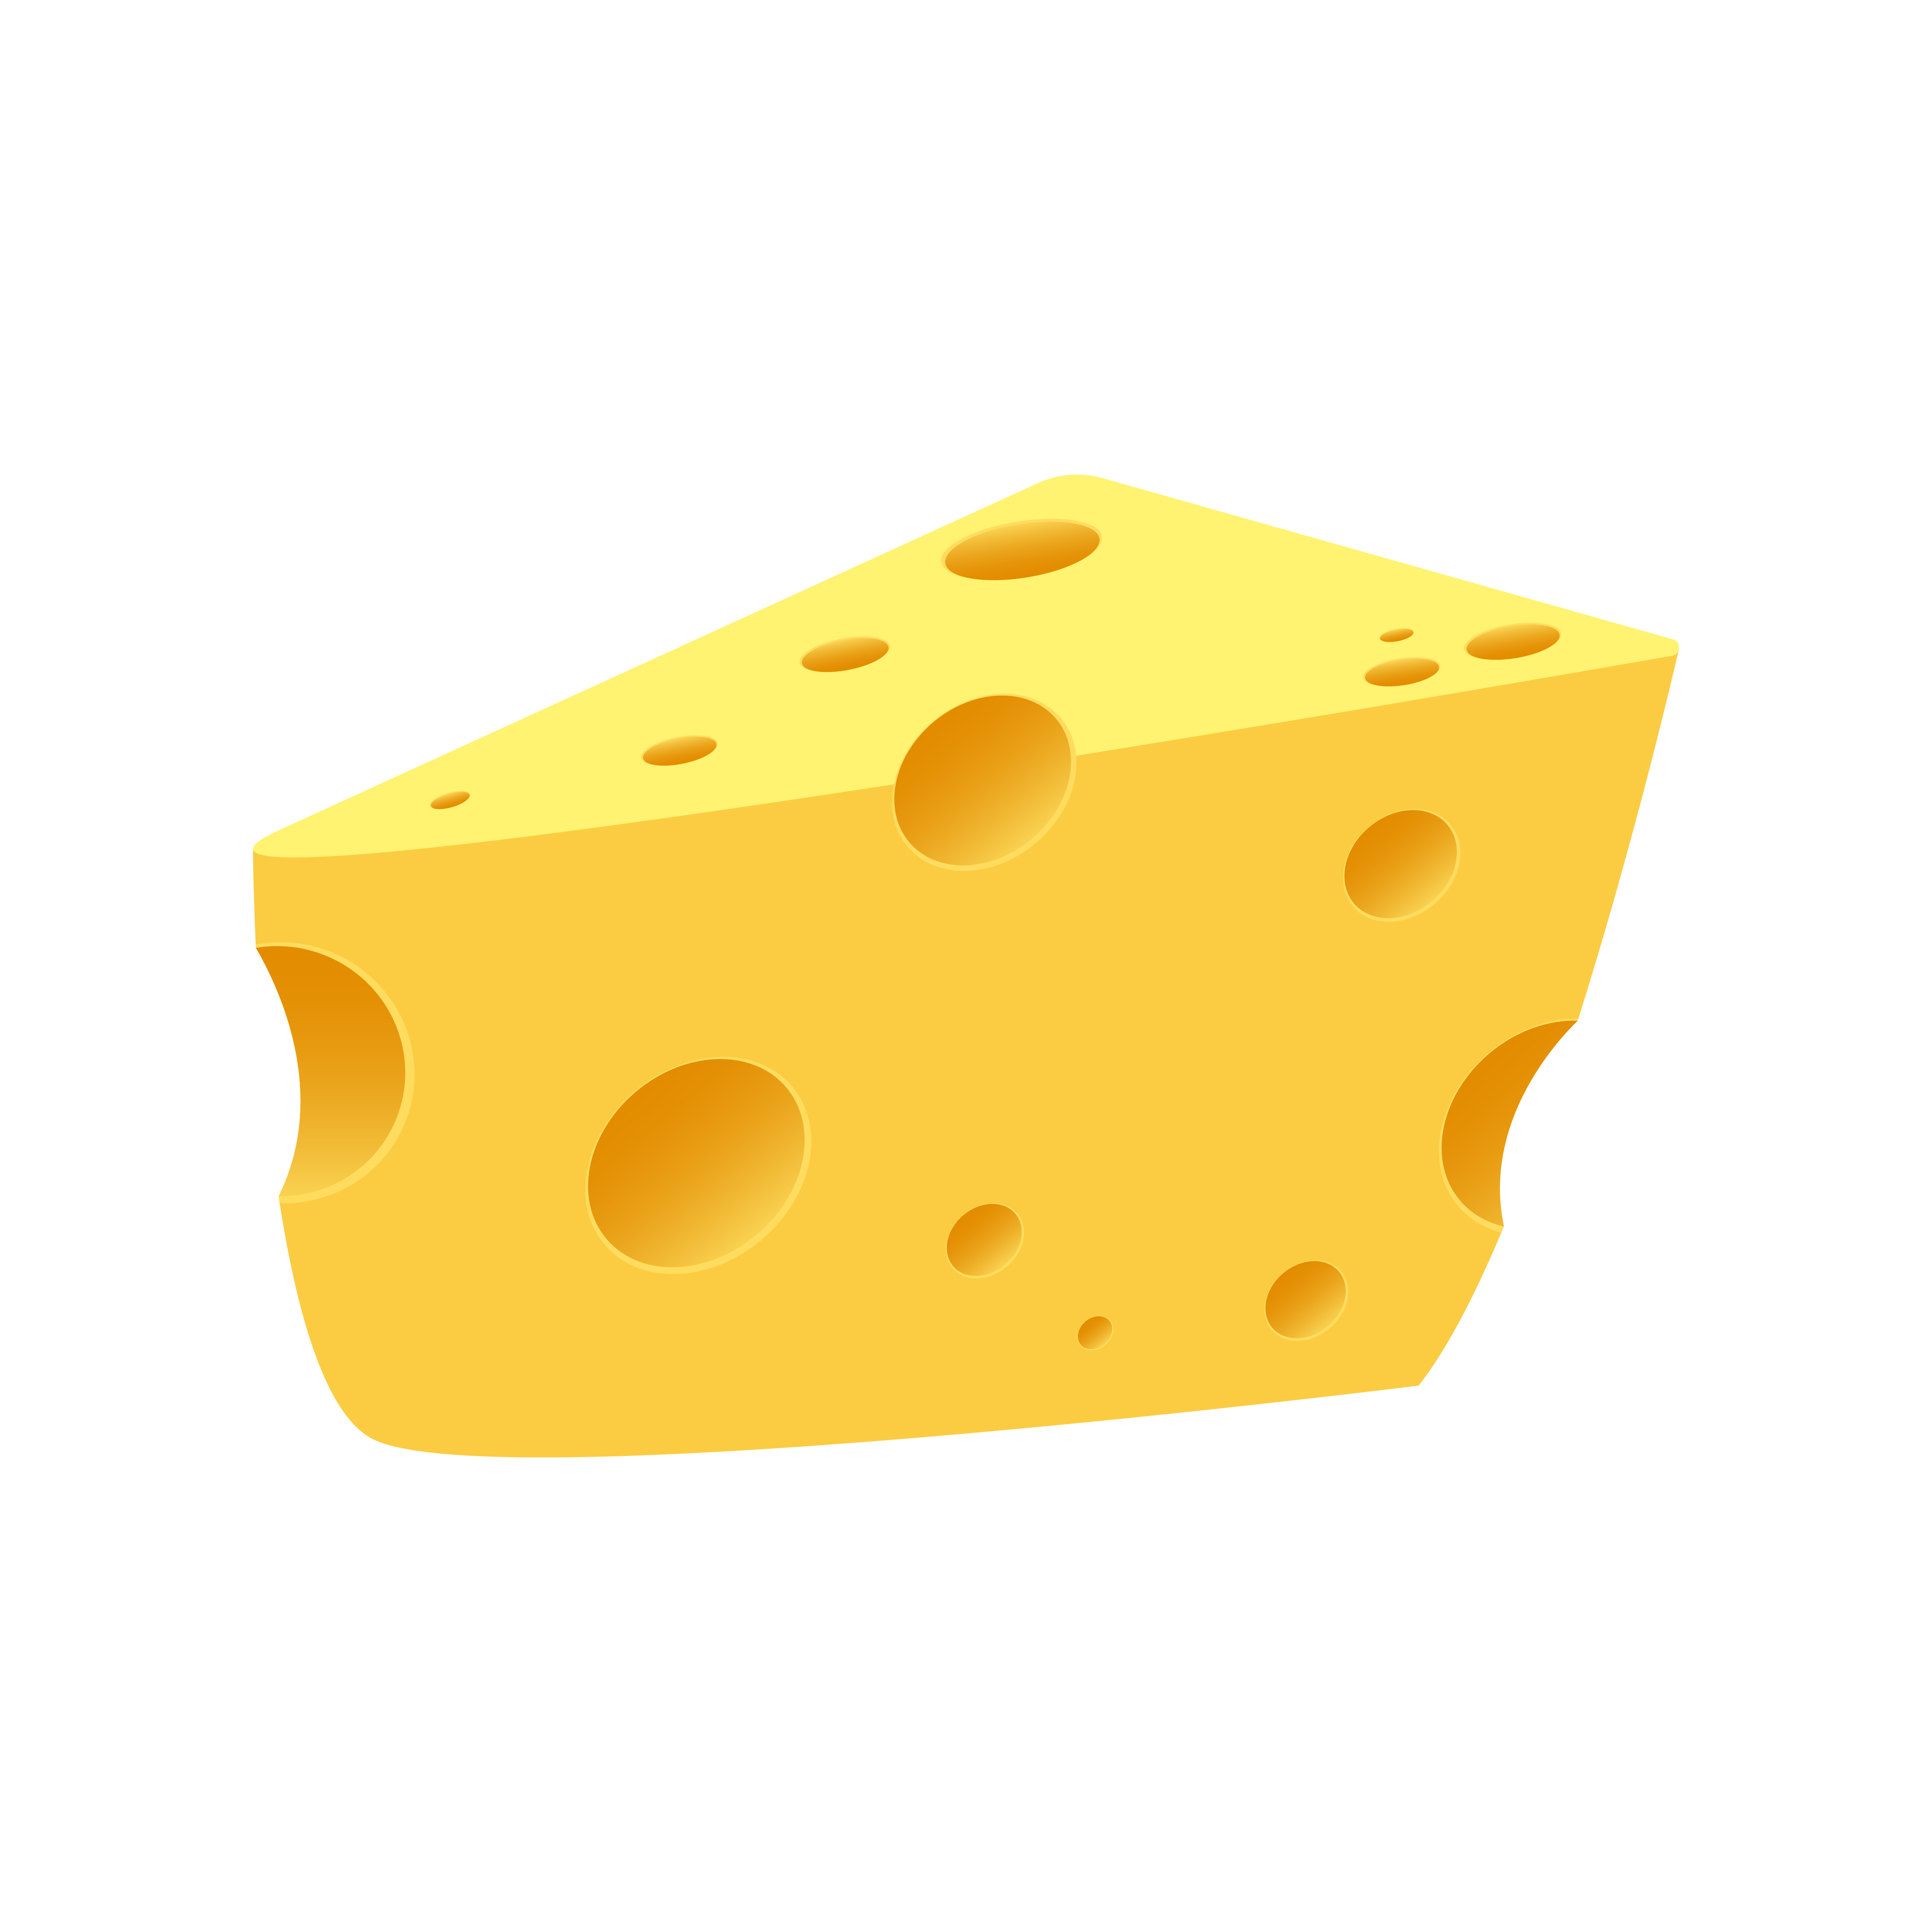 Fromage Images, Stock Photos & Vectors | Shutterstock